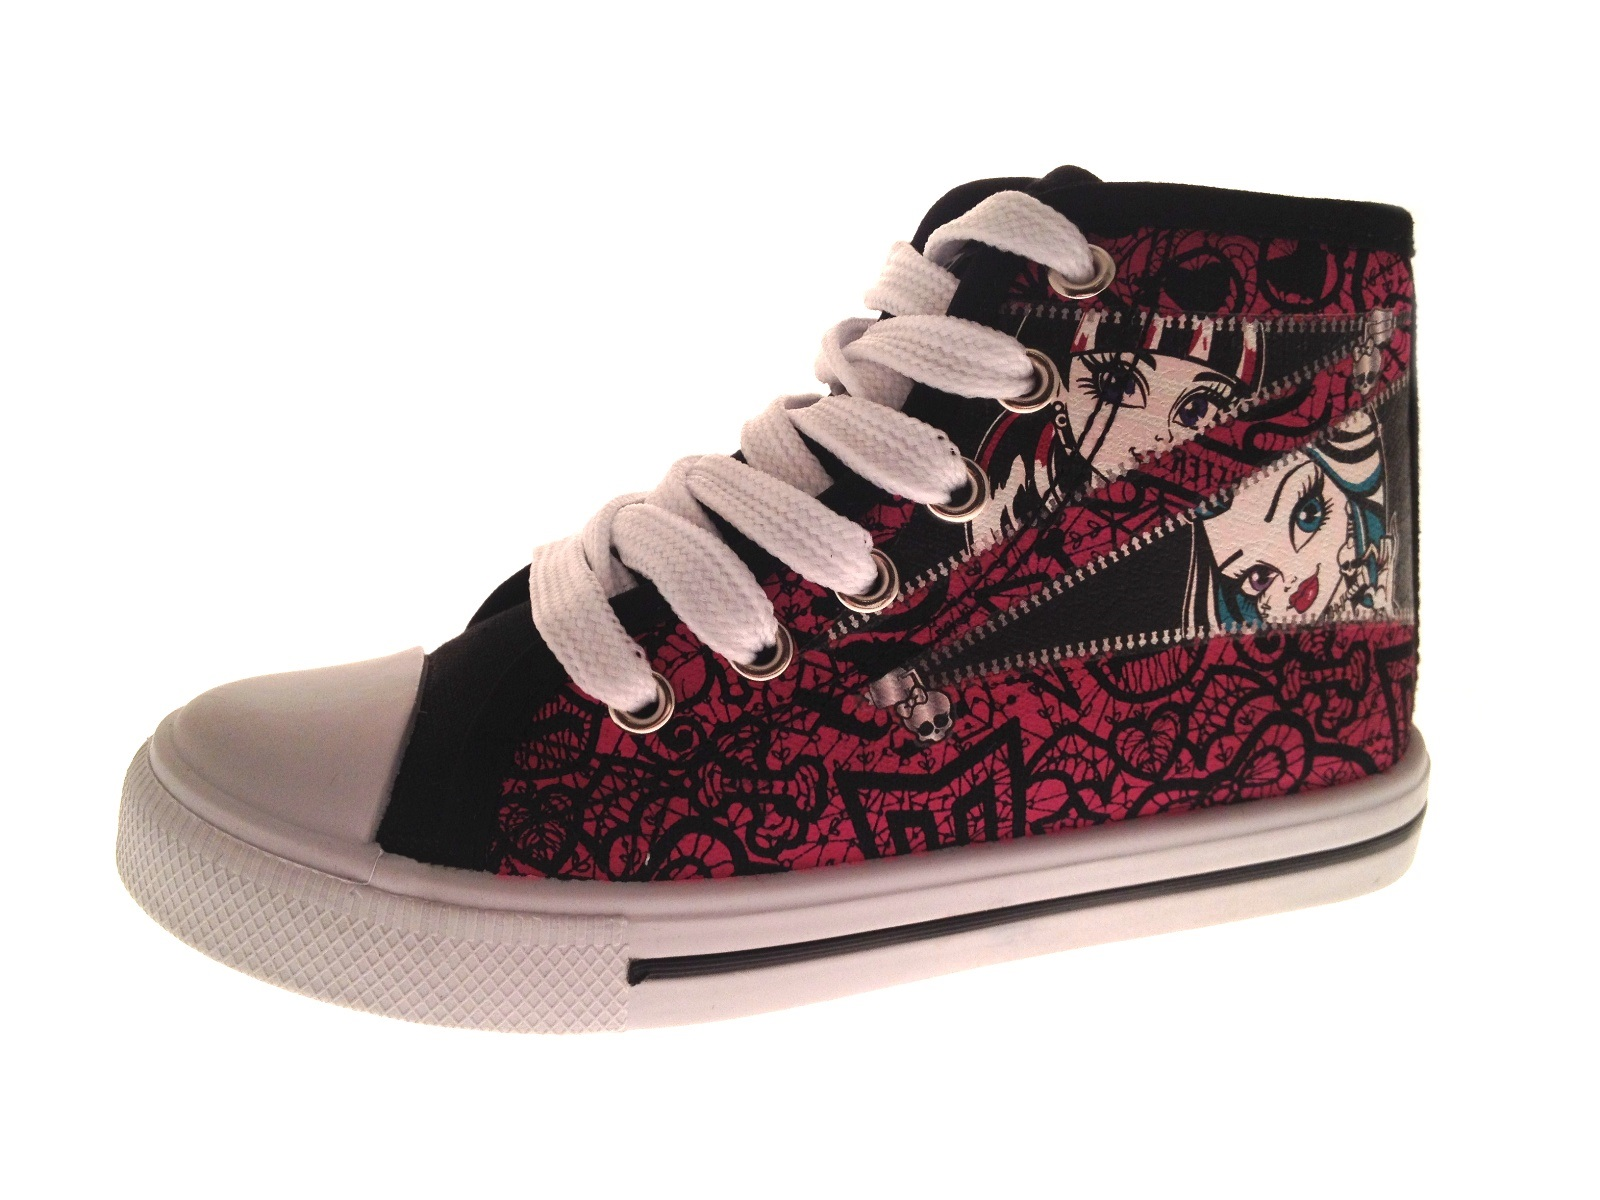 You searched for: monster high shoes! Etsy is the home to thousands of handmade, vintage, and one-of-a-kind products and gifts related to your search. No matter what you're looking for or where you are in the world, our global marketplace of sellers can help you .